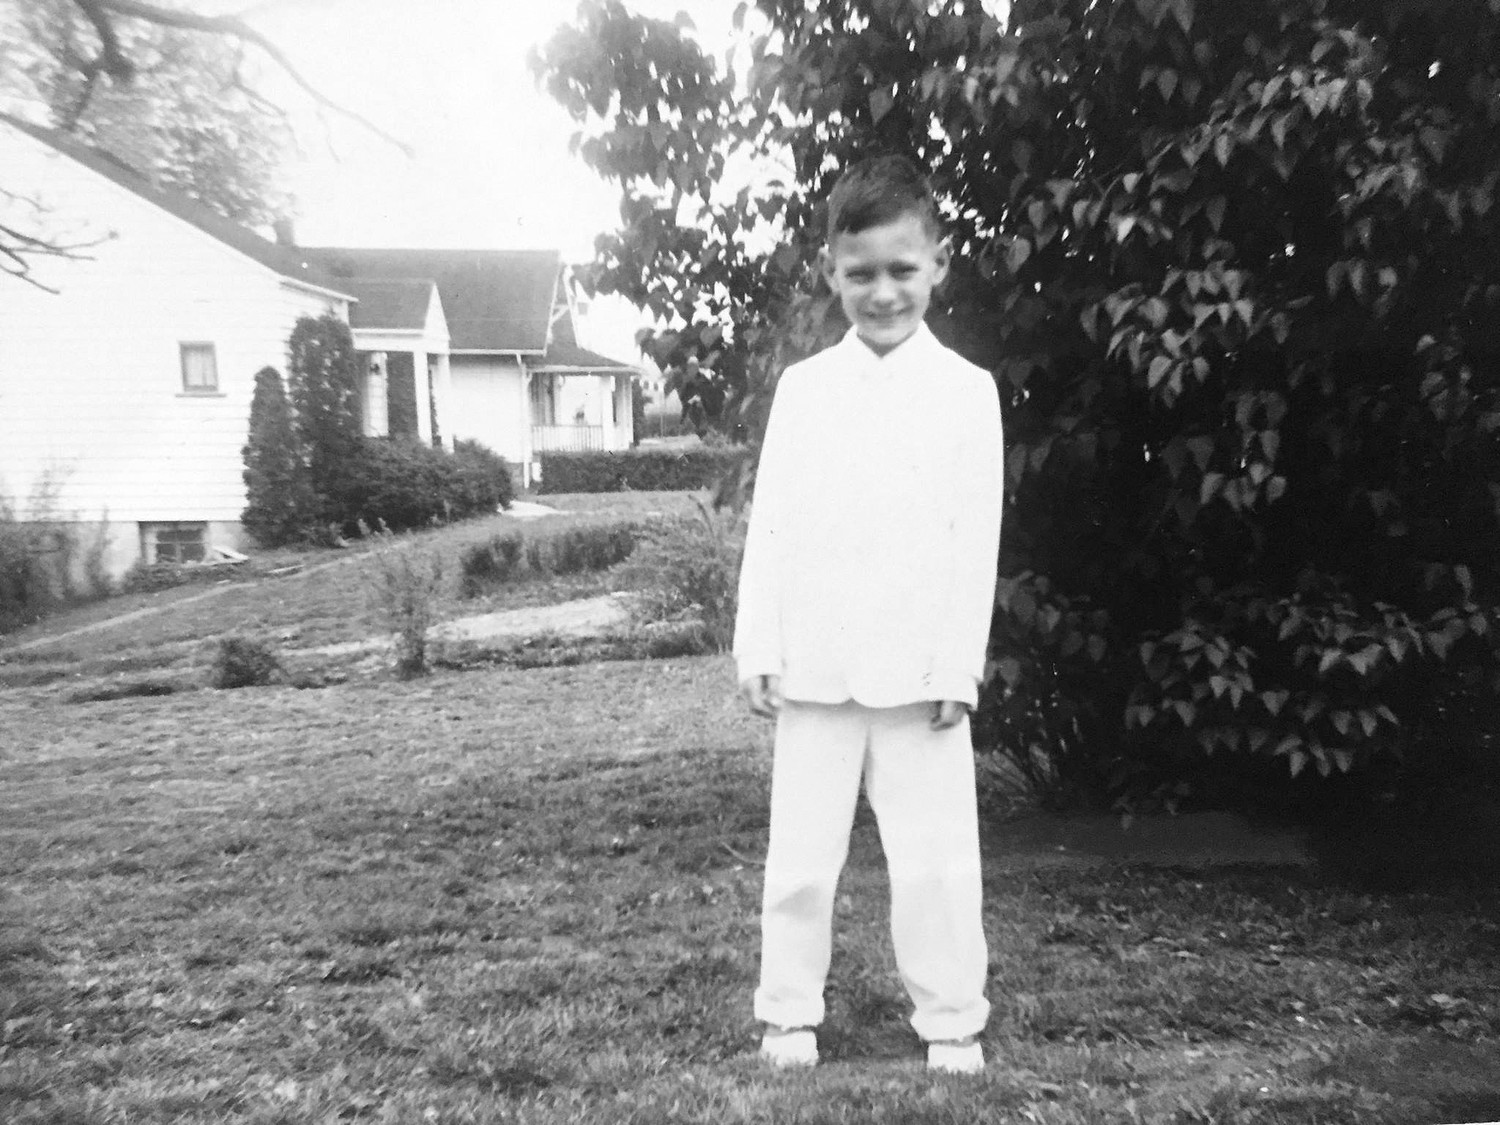 The bishop dresses in his finest on the day of his first holy Communion, Sunday, May 13, 1956 at St. Teresa of Avila Parish in the Diocese of Pittsburgh.